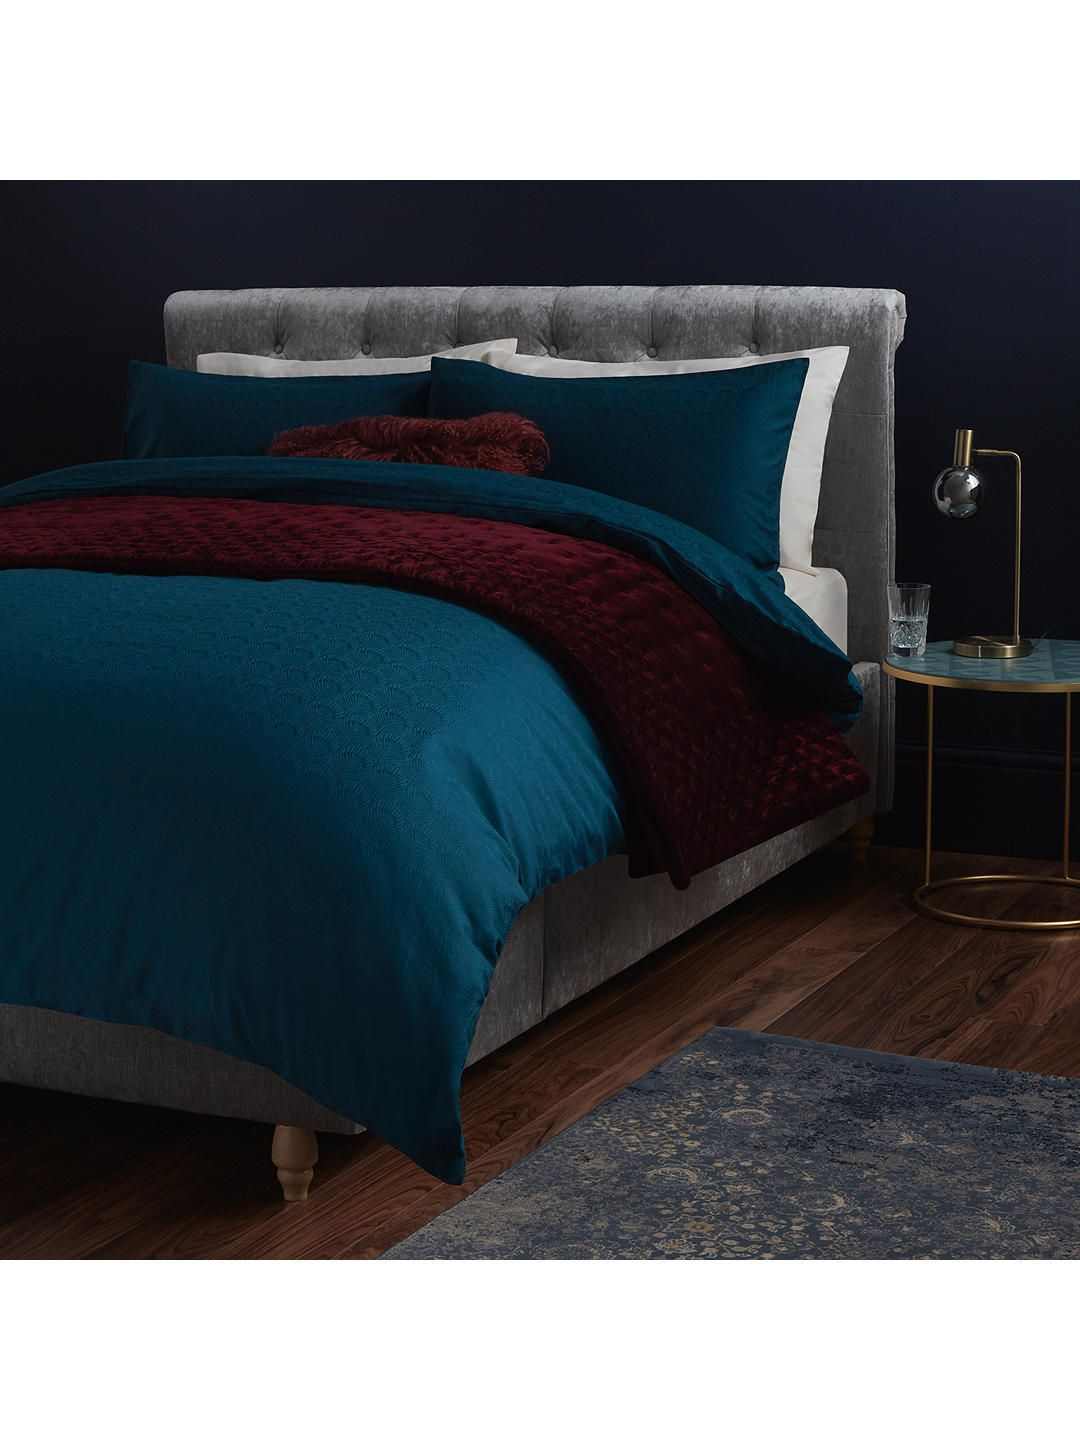 John Lewis & Partners Textured and Decorative Pavone Duvet